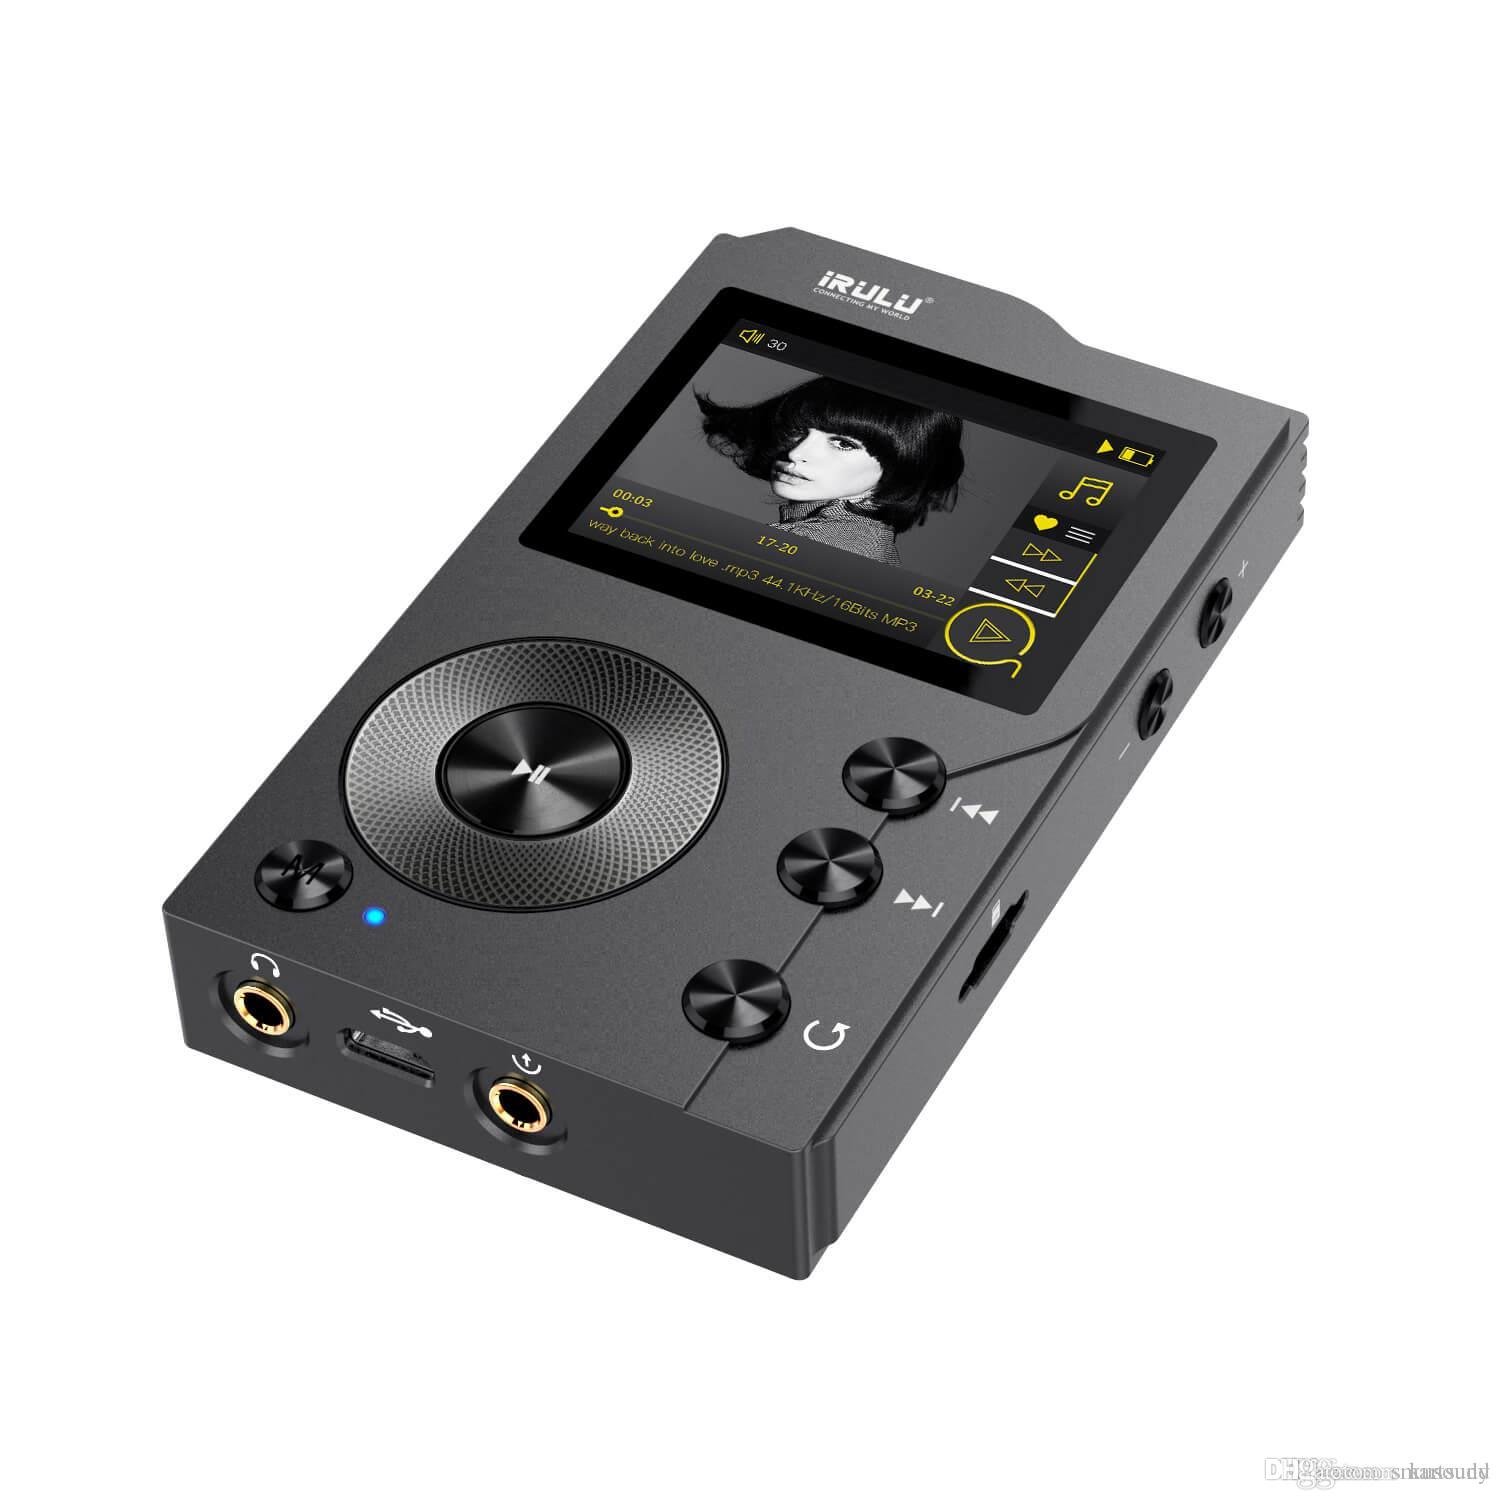 iRULU F20 HiFi Lossless Mp3 Player with Bluetooth:DSD High Resolution Digital Audio Music Player with 16GB Memory Card